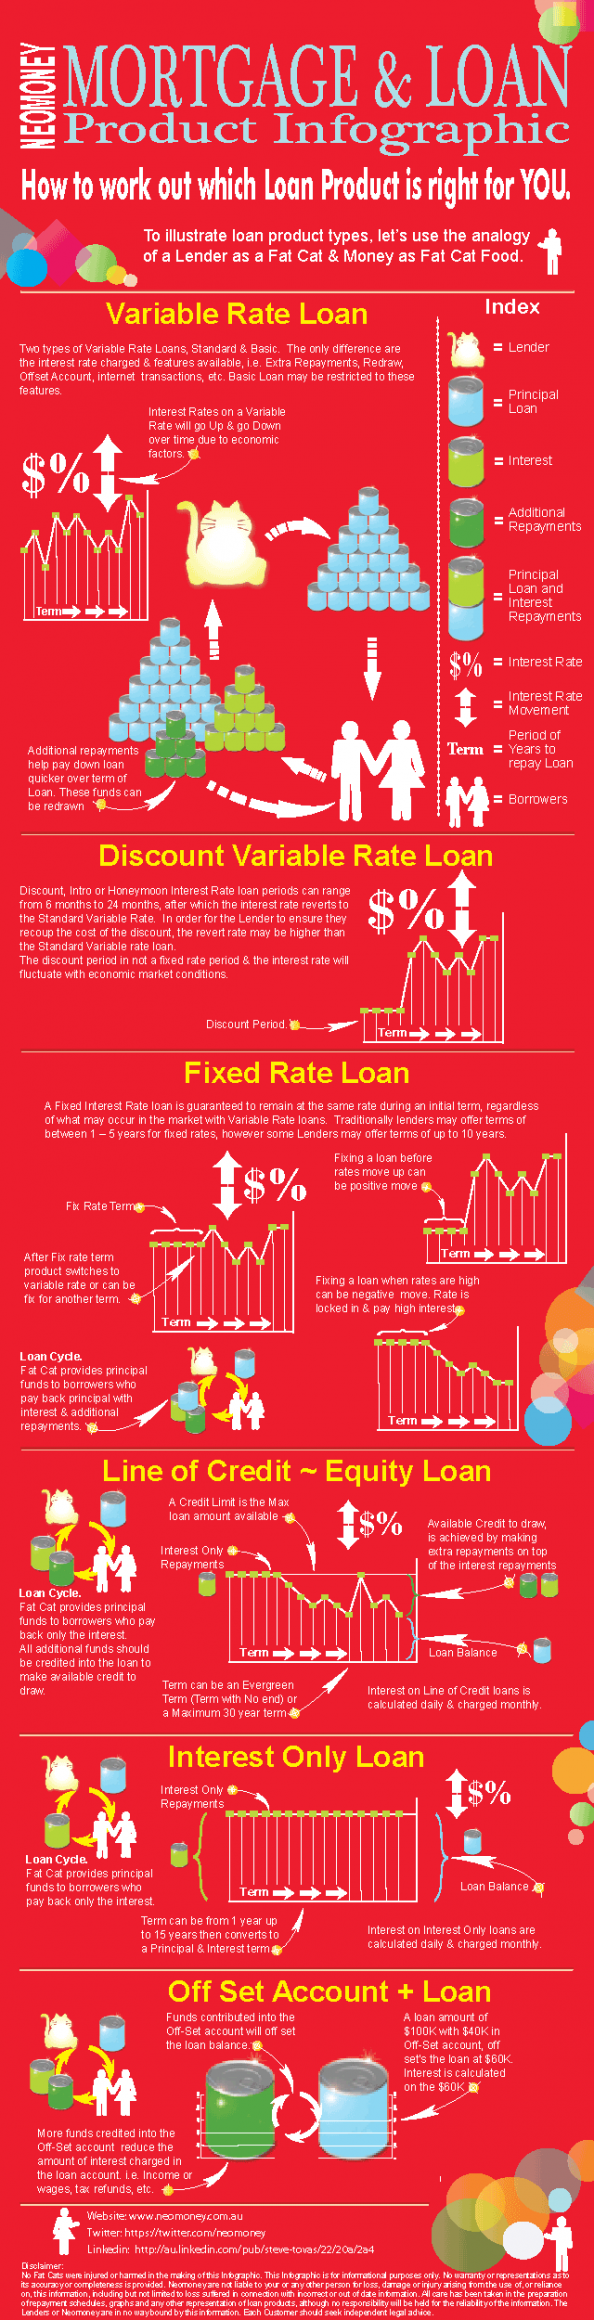 Pin By Today S Mortgage On Learn About Mortgages Mortgage Loan Calculator Mortgage Loan Originator Refinance Mortgage